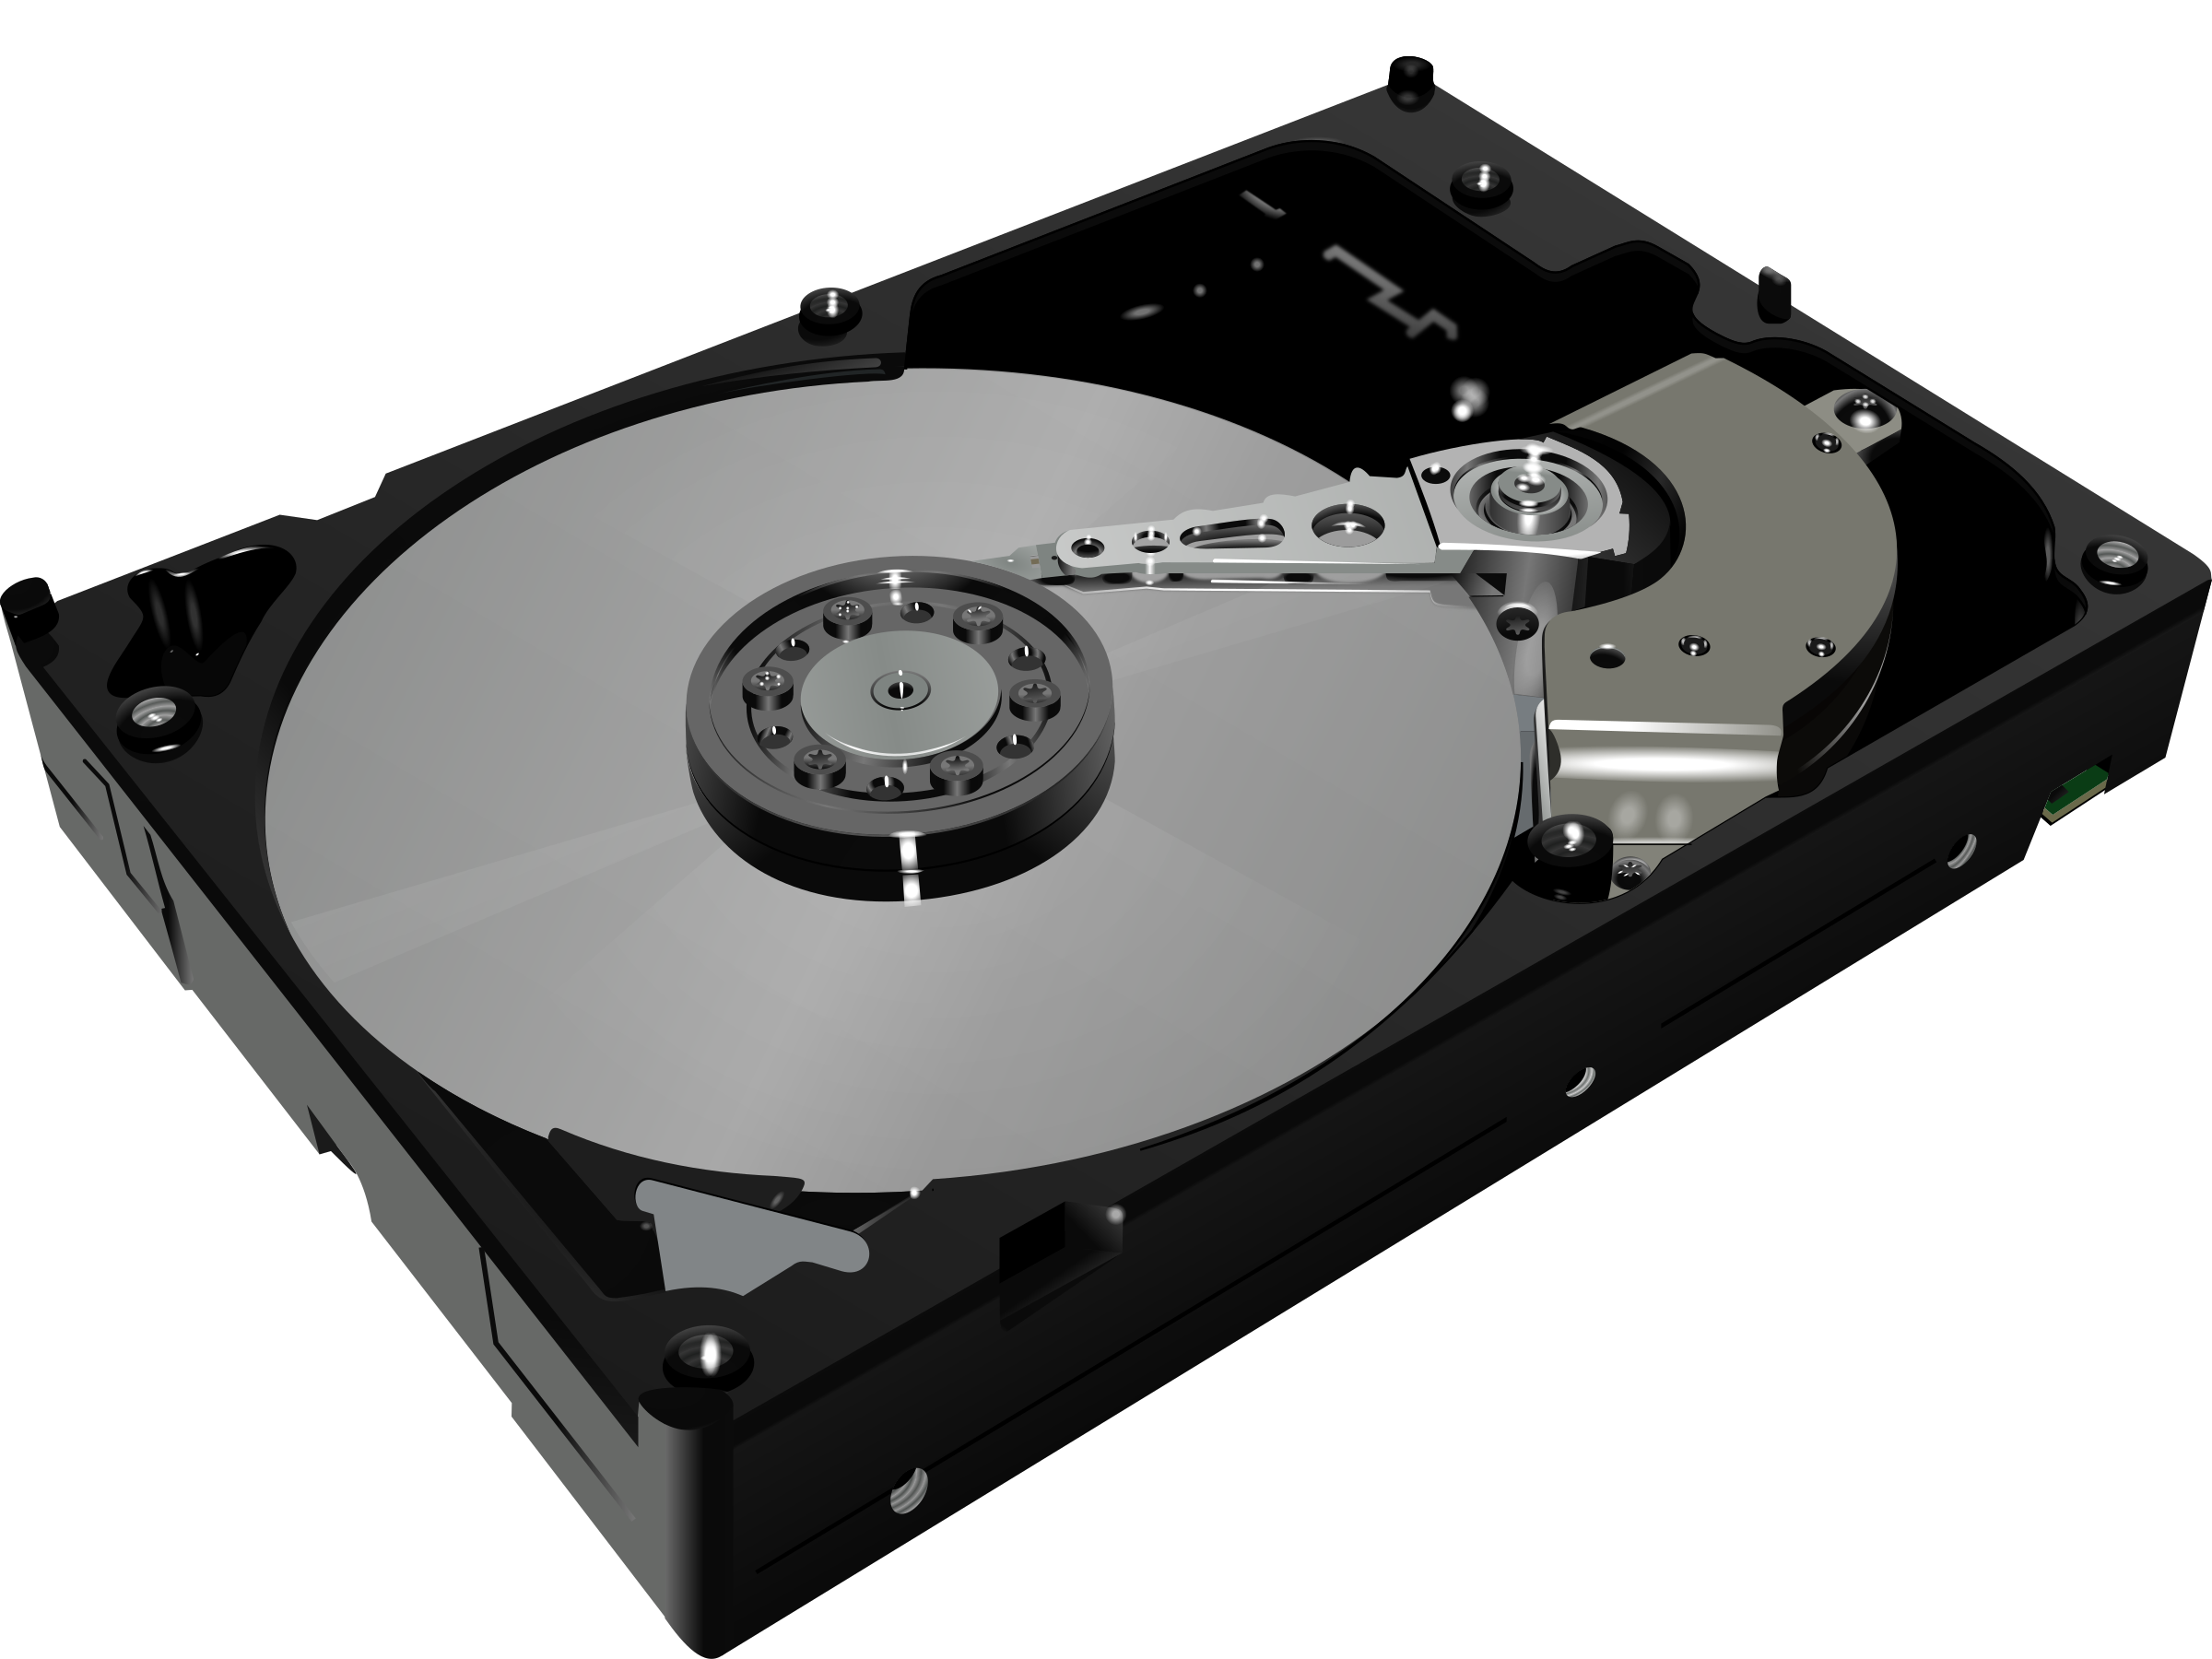 2400x1800 > Hard Disk Drive Wallpapers